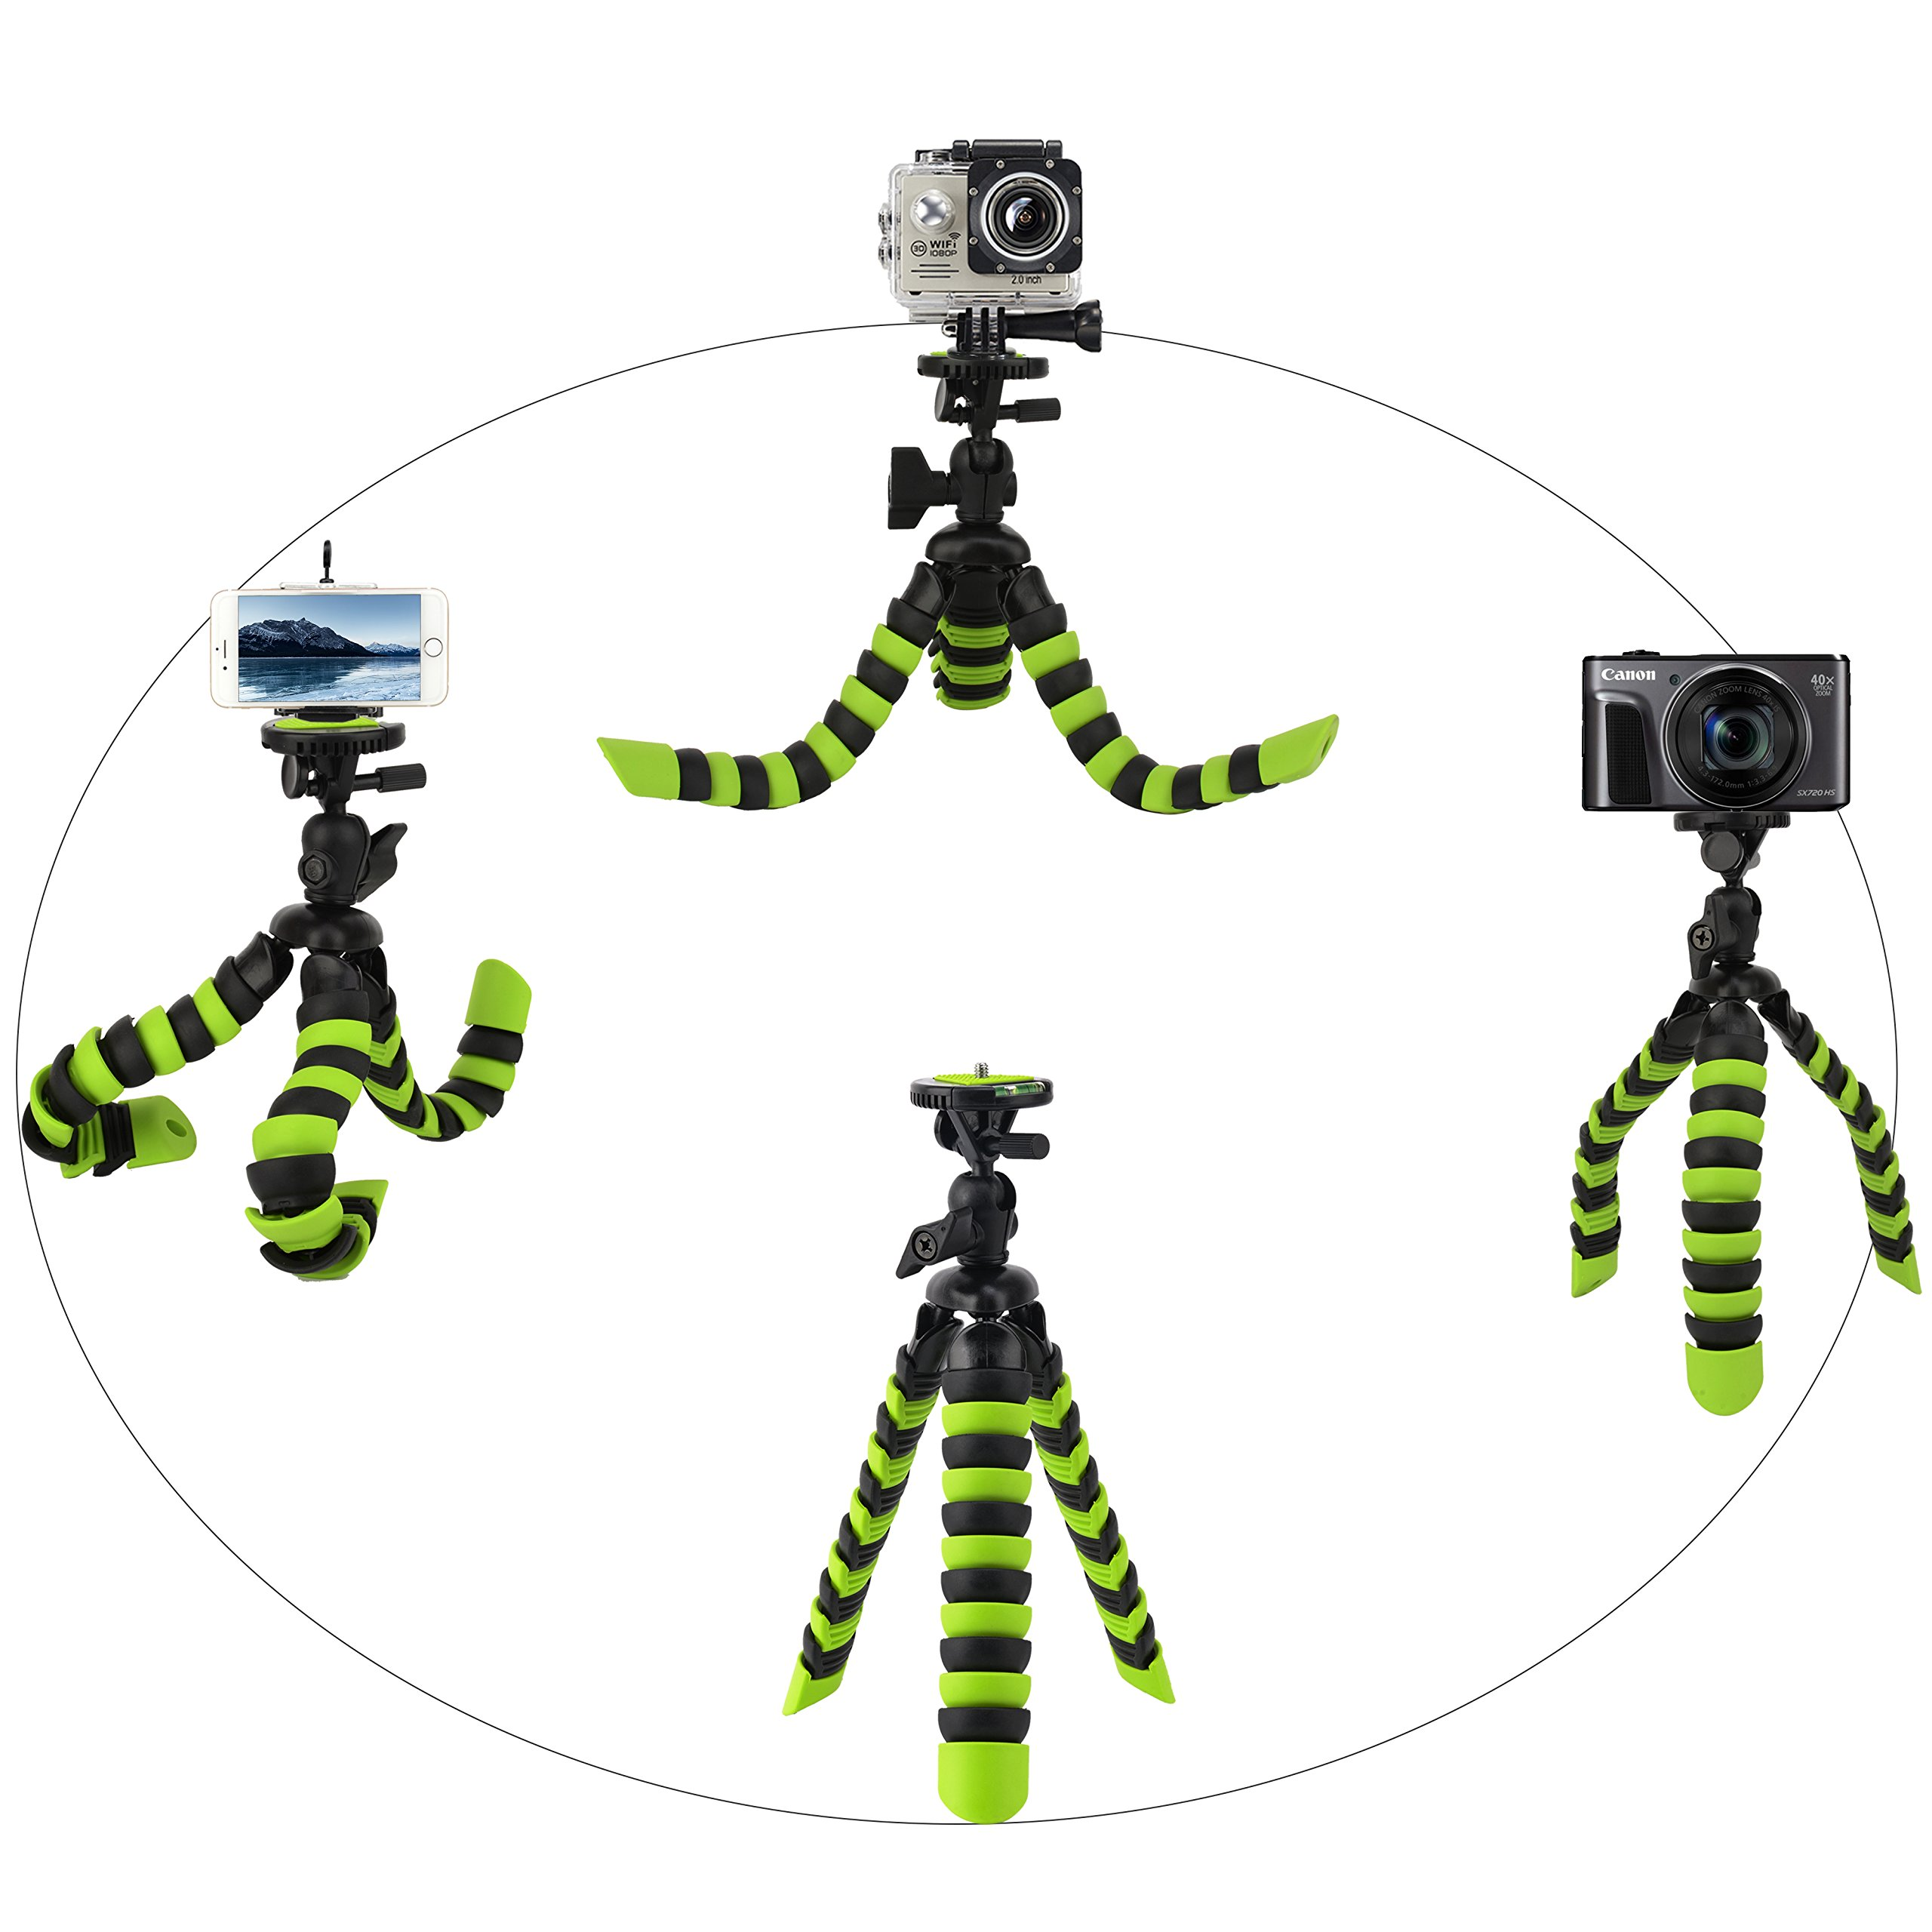 Tairoad 12 Inch Flexible Tripod with Bendable Leg and Free Smartphone and Gopro Mount Adapter Best Travel Tripod